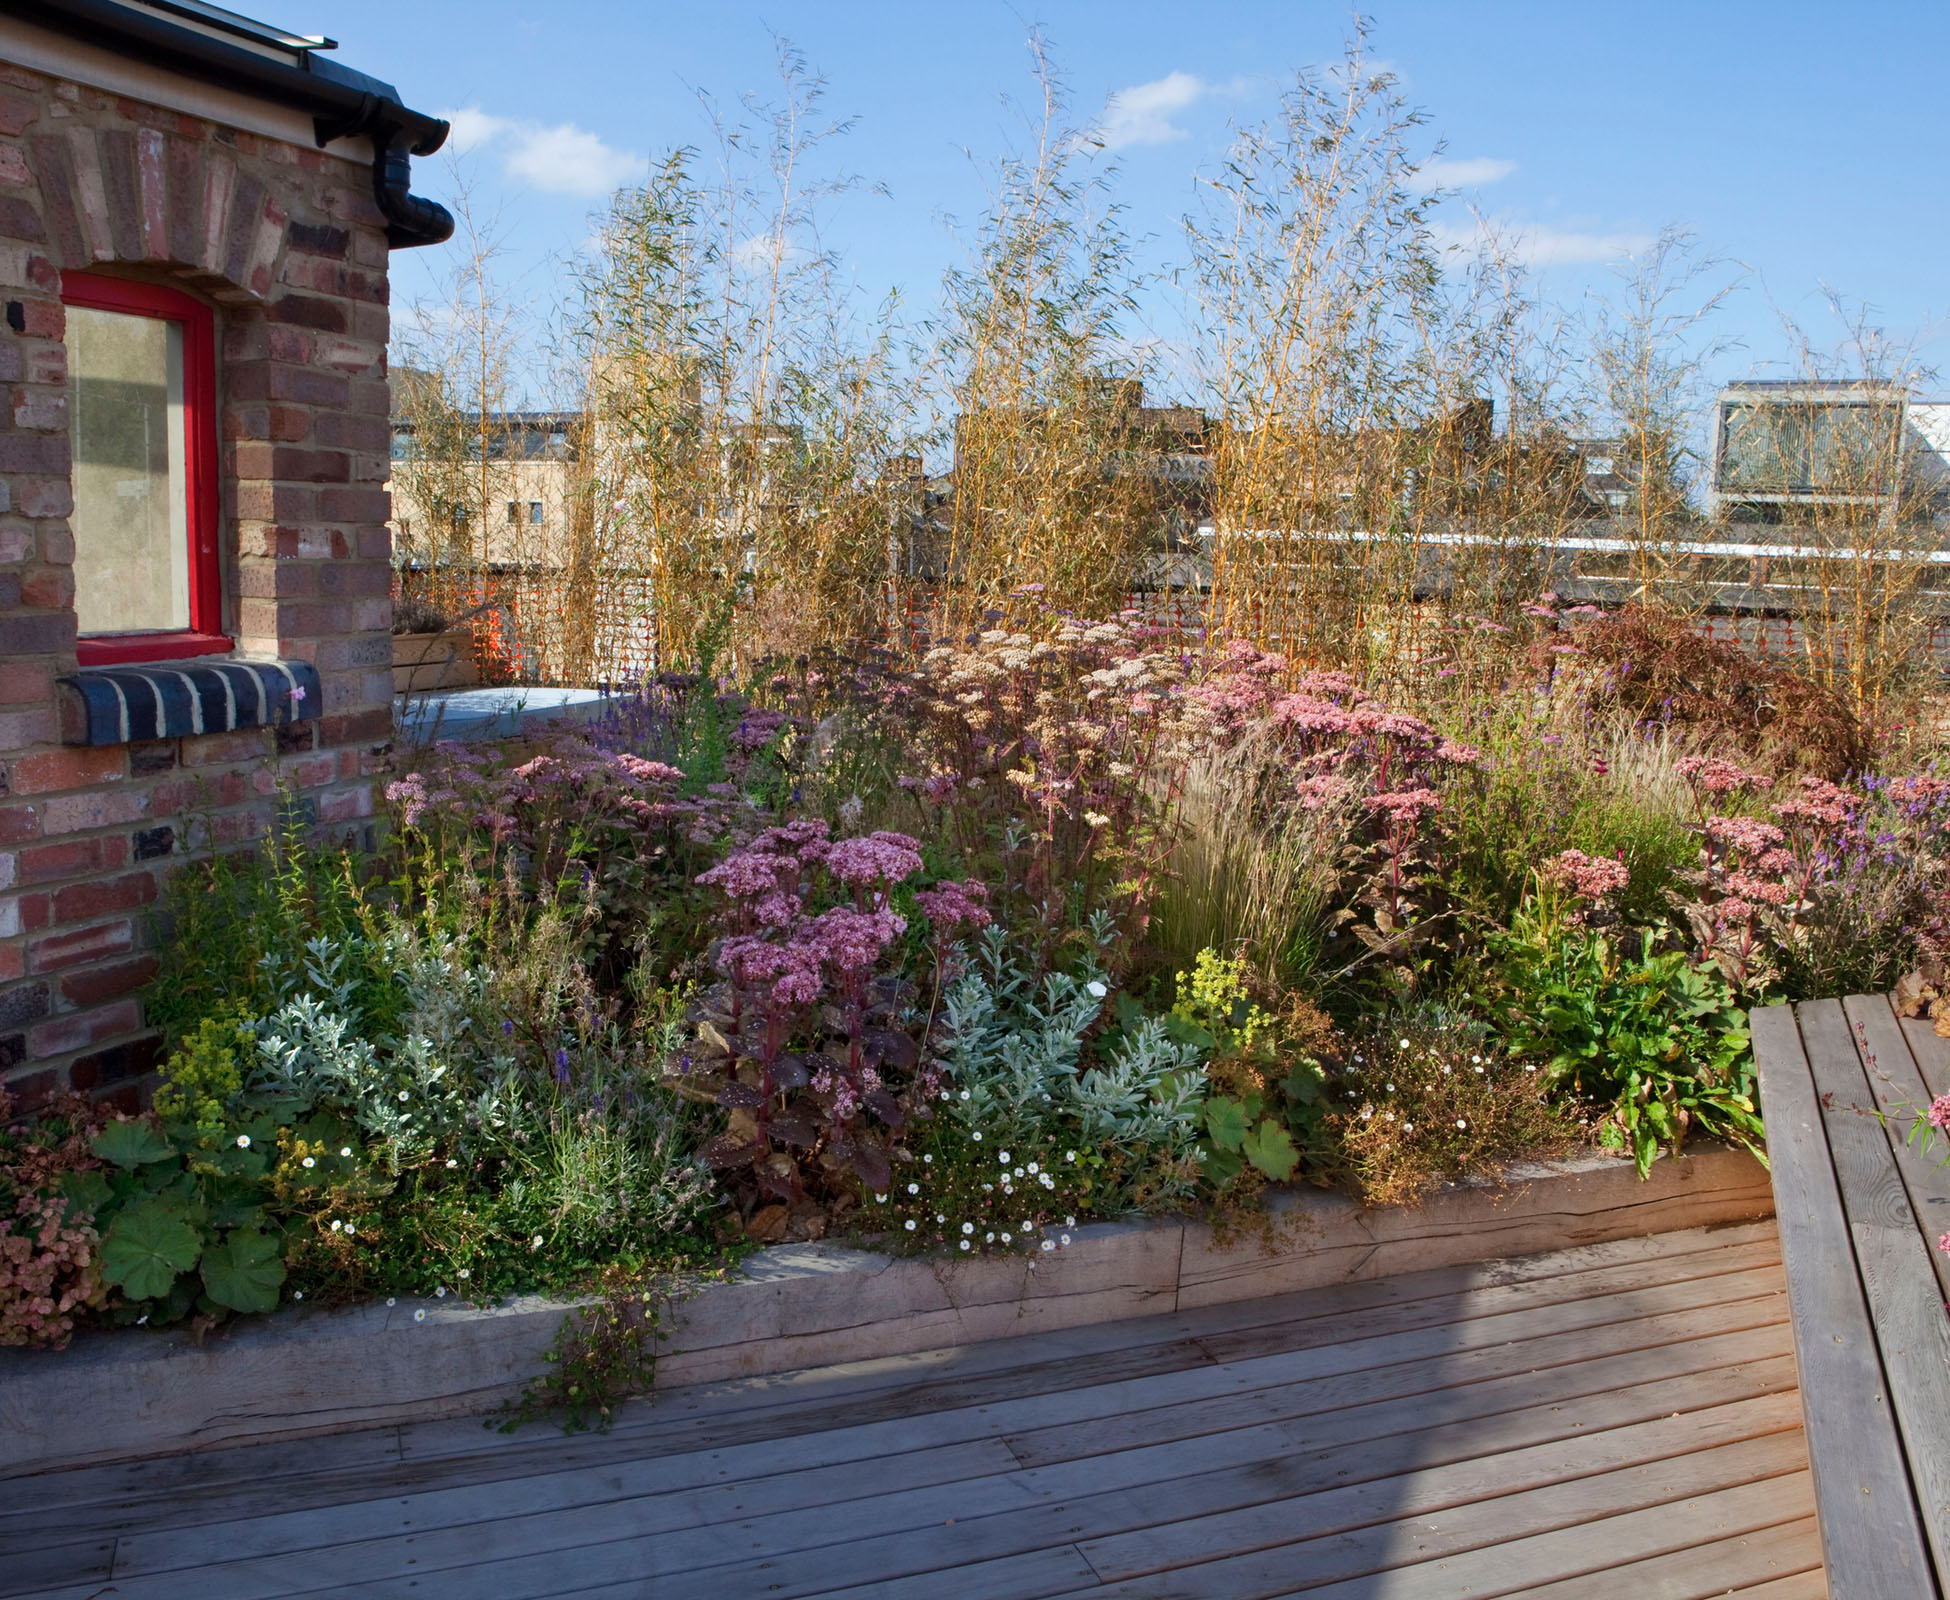 The prairie style planting of this terrace is well suited to the harsh environment of roof gardens